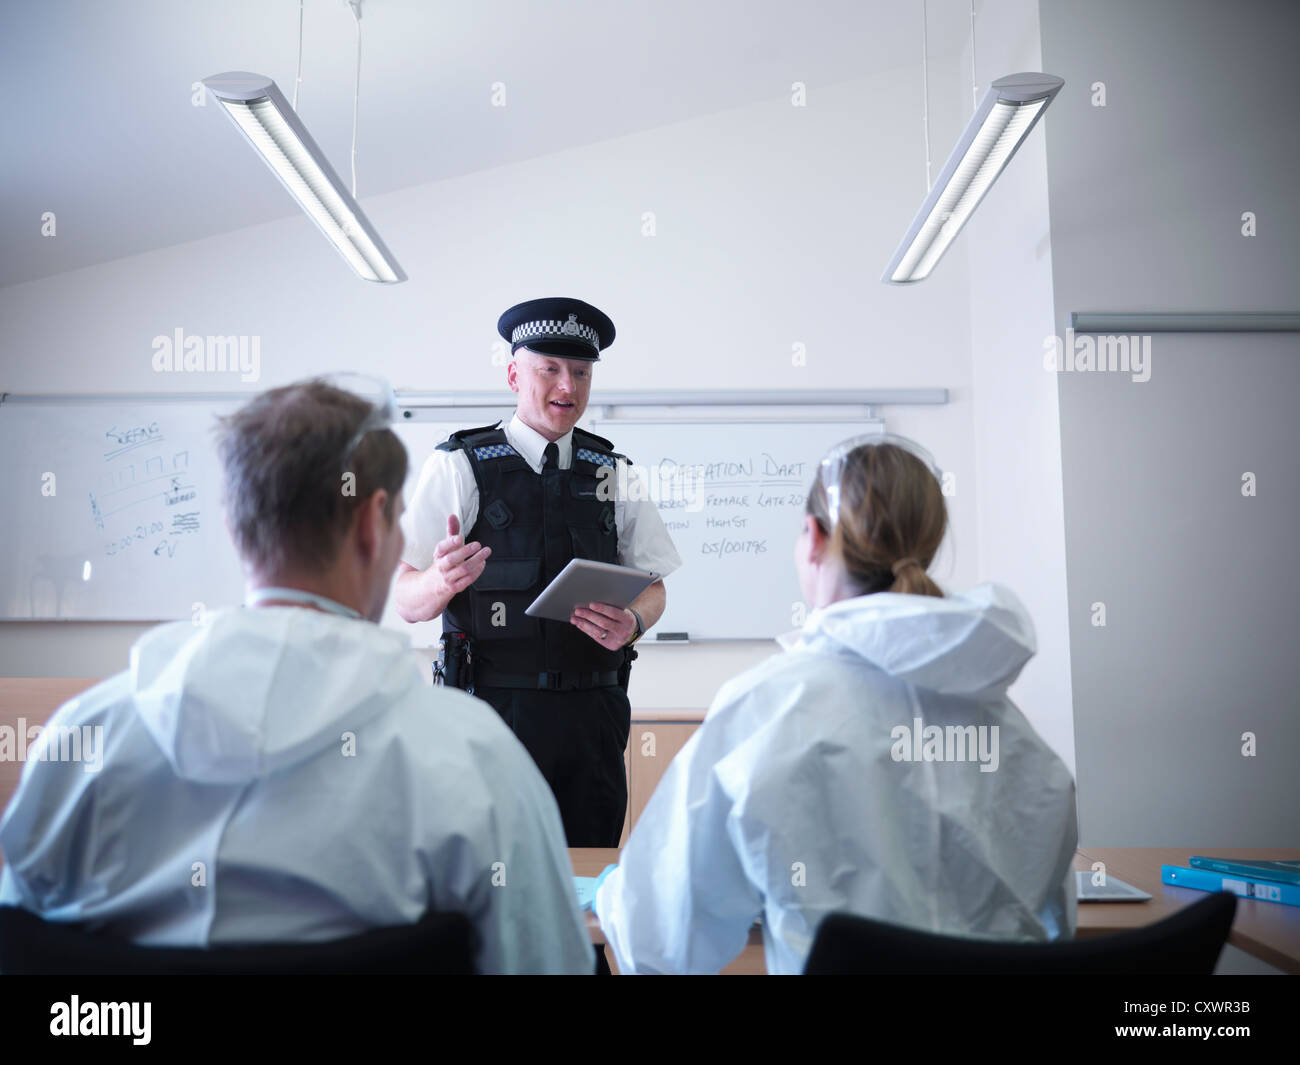 Policeman talking to forensic scientists - Stock Image